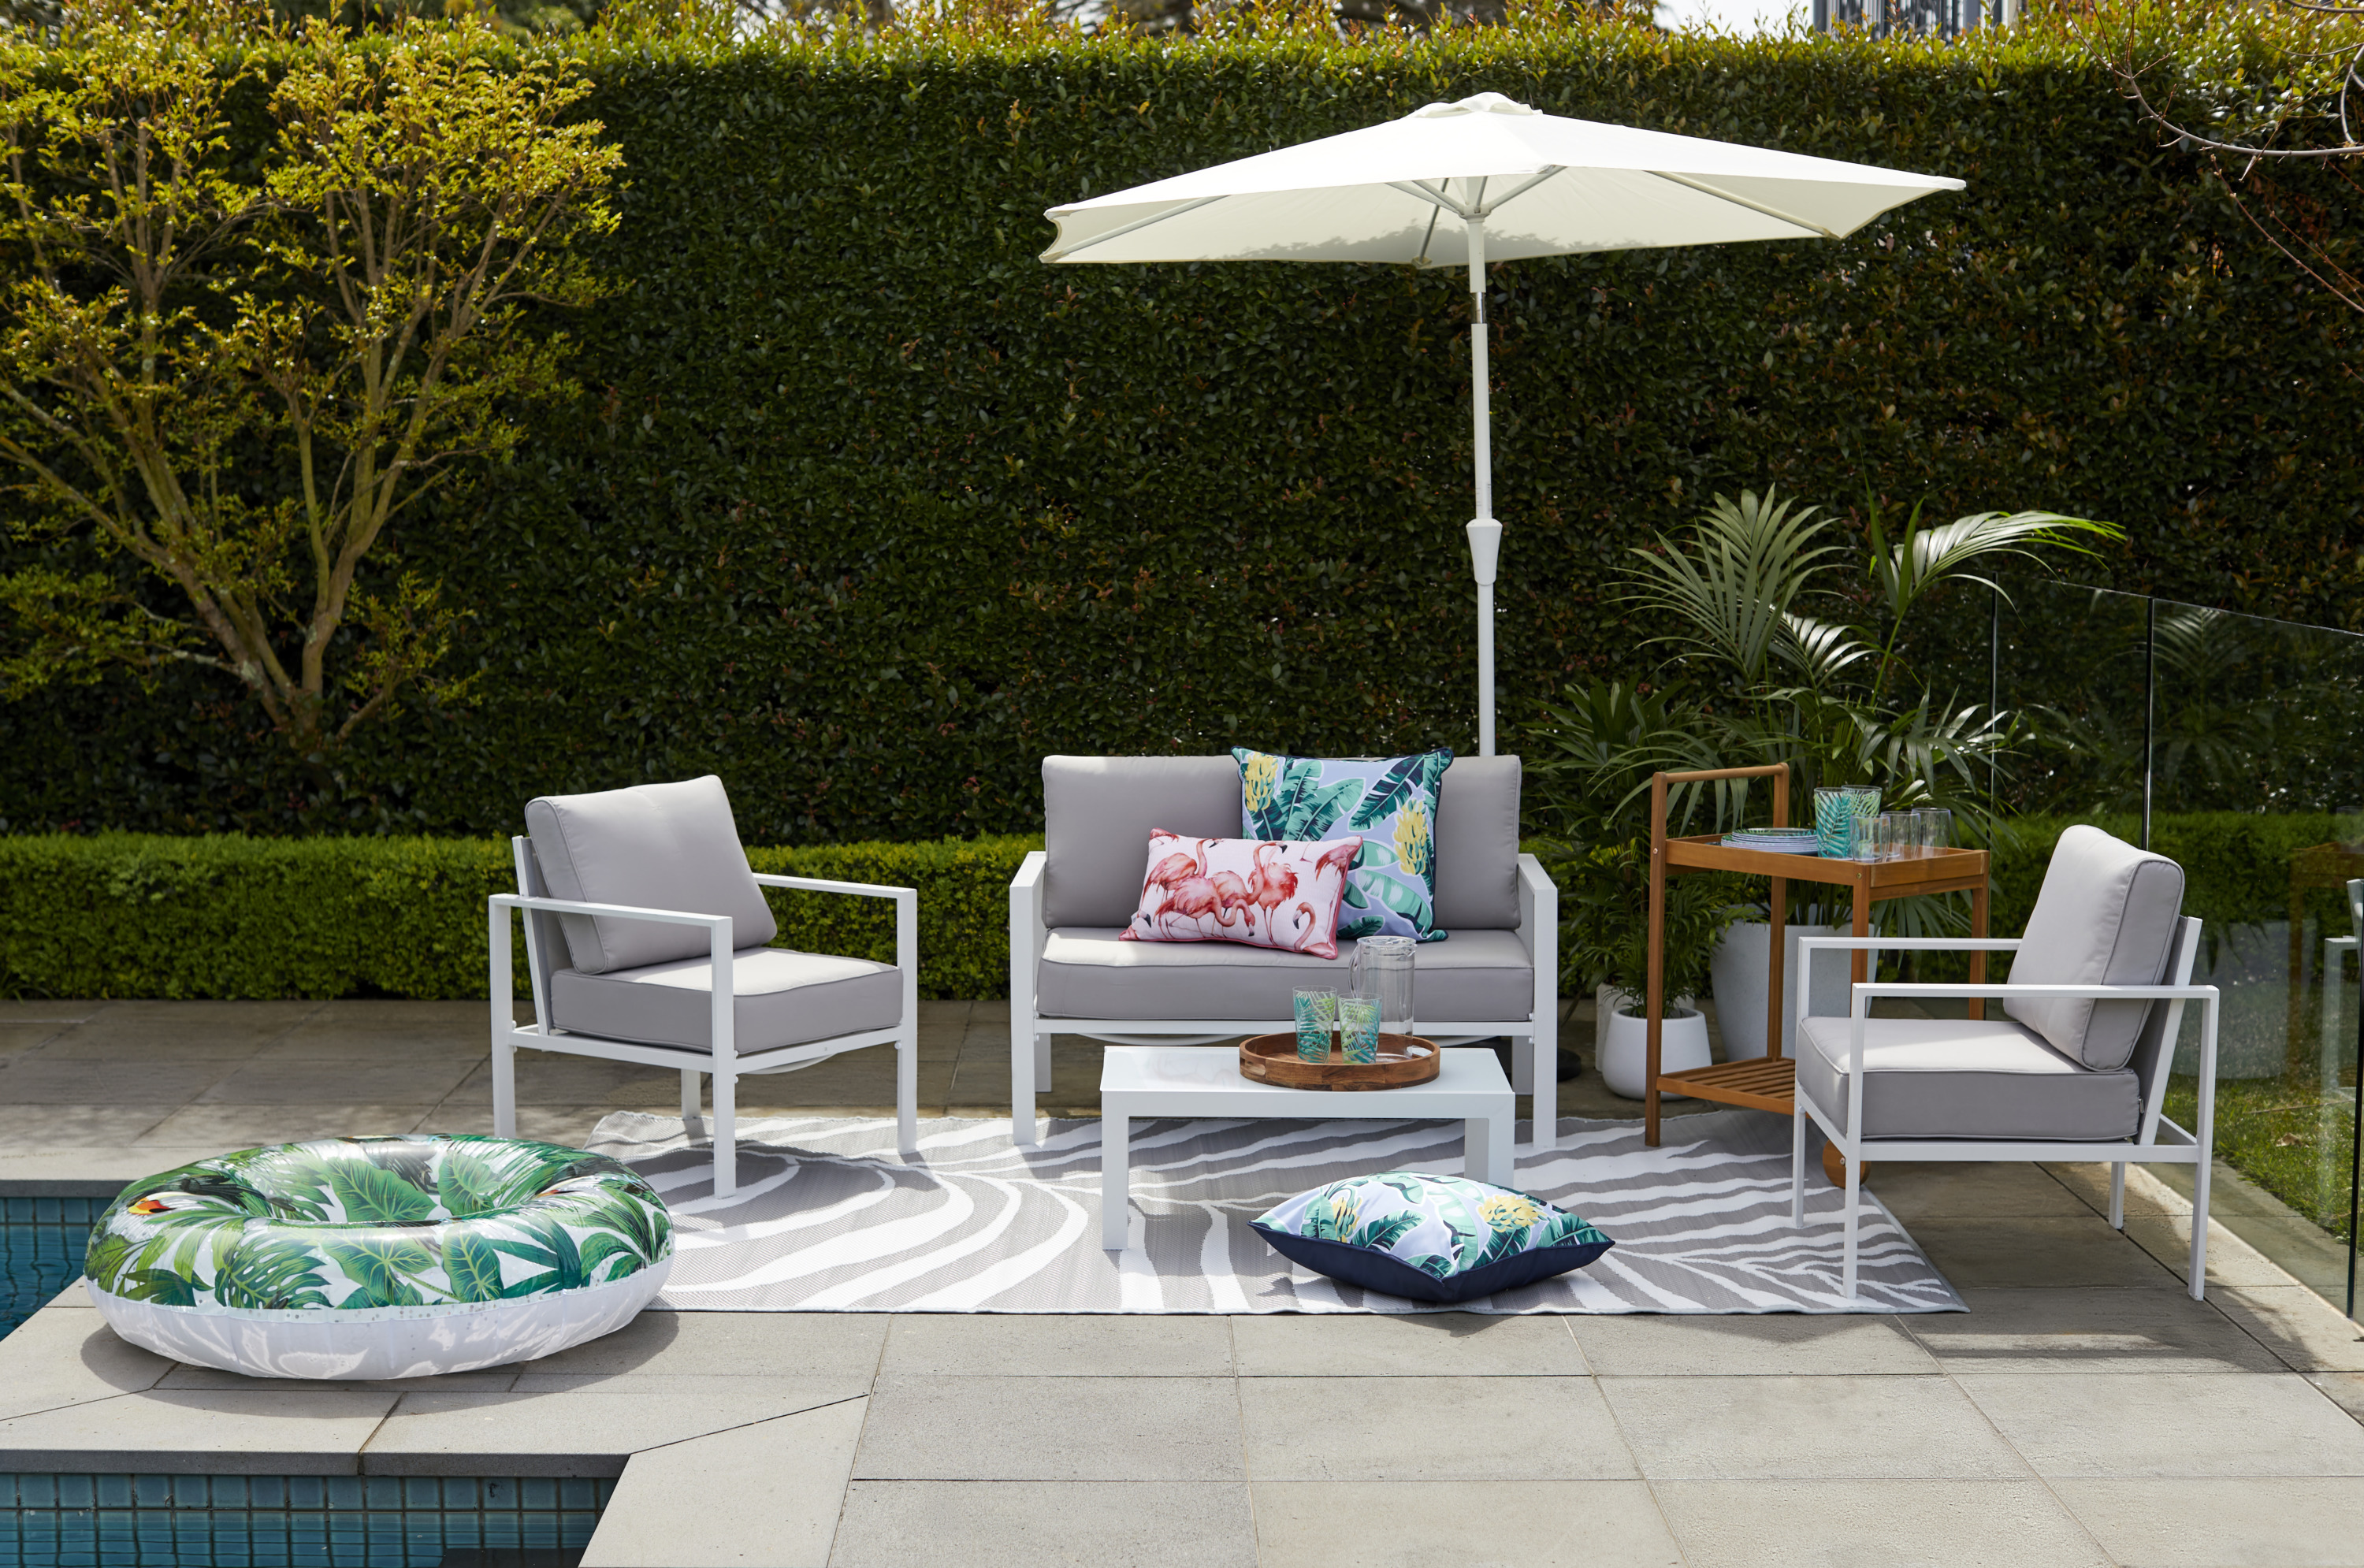 Kmart outdoor furniture range launched as online-only - The